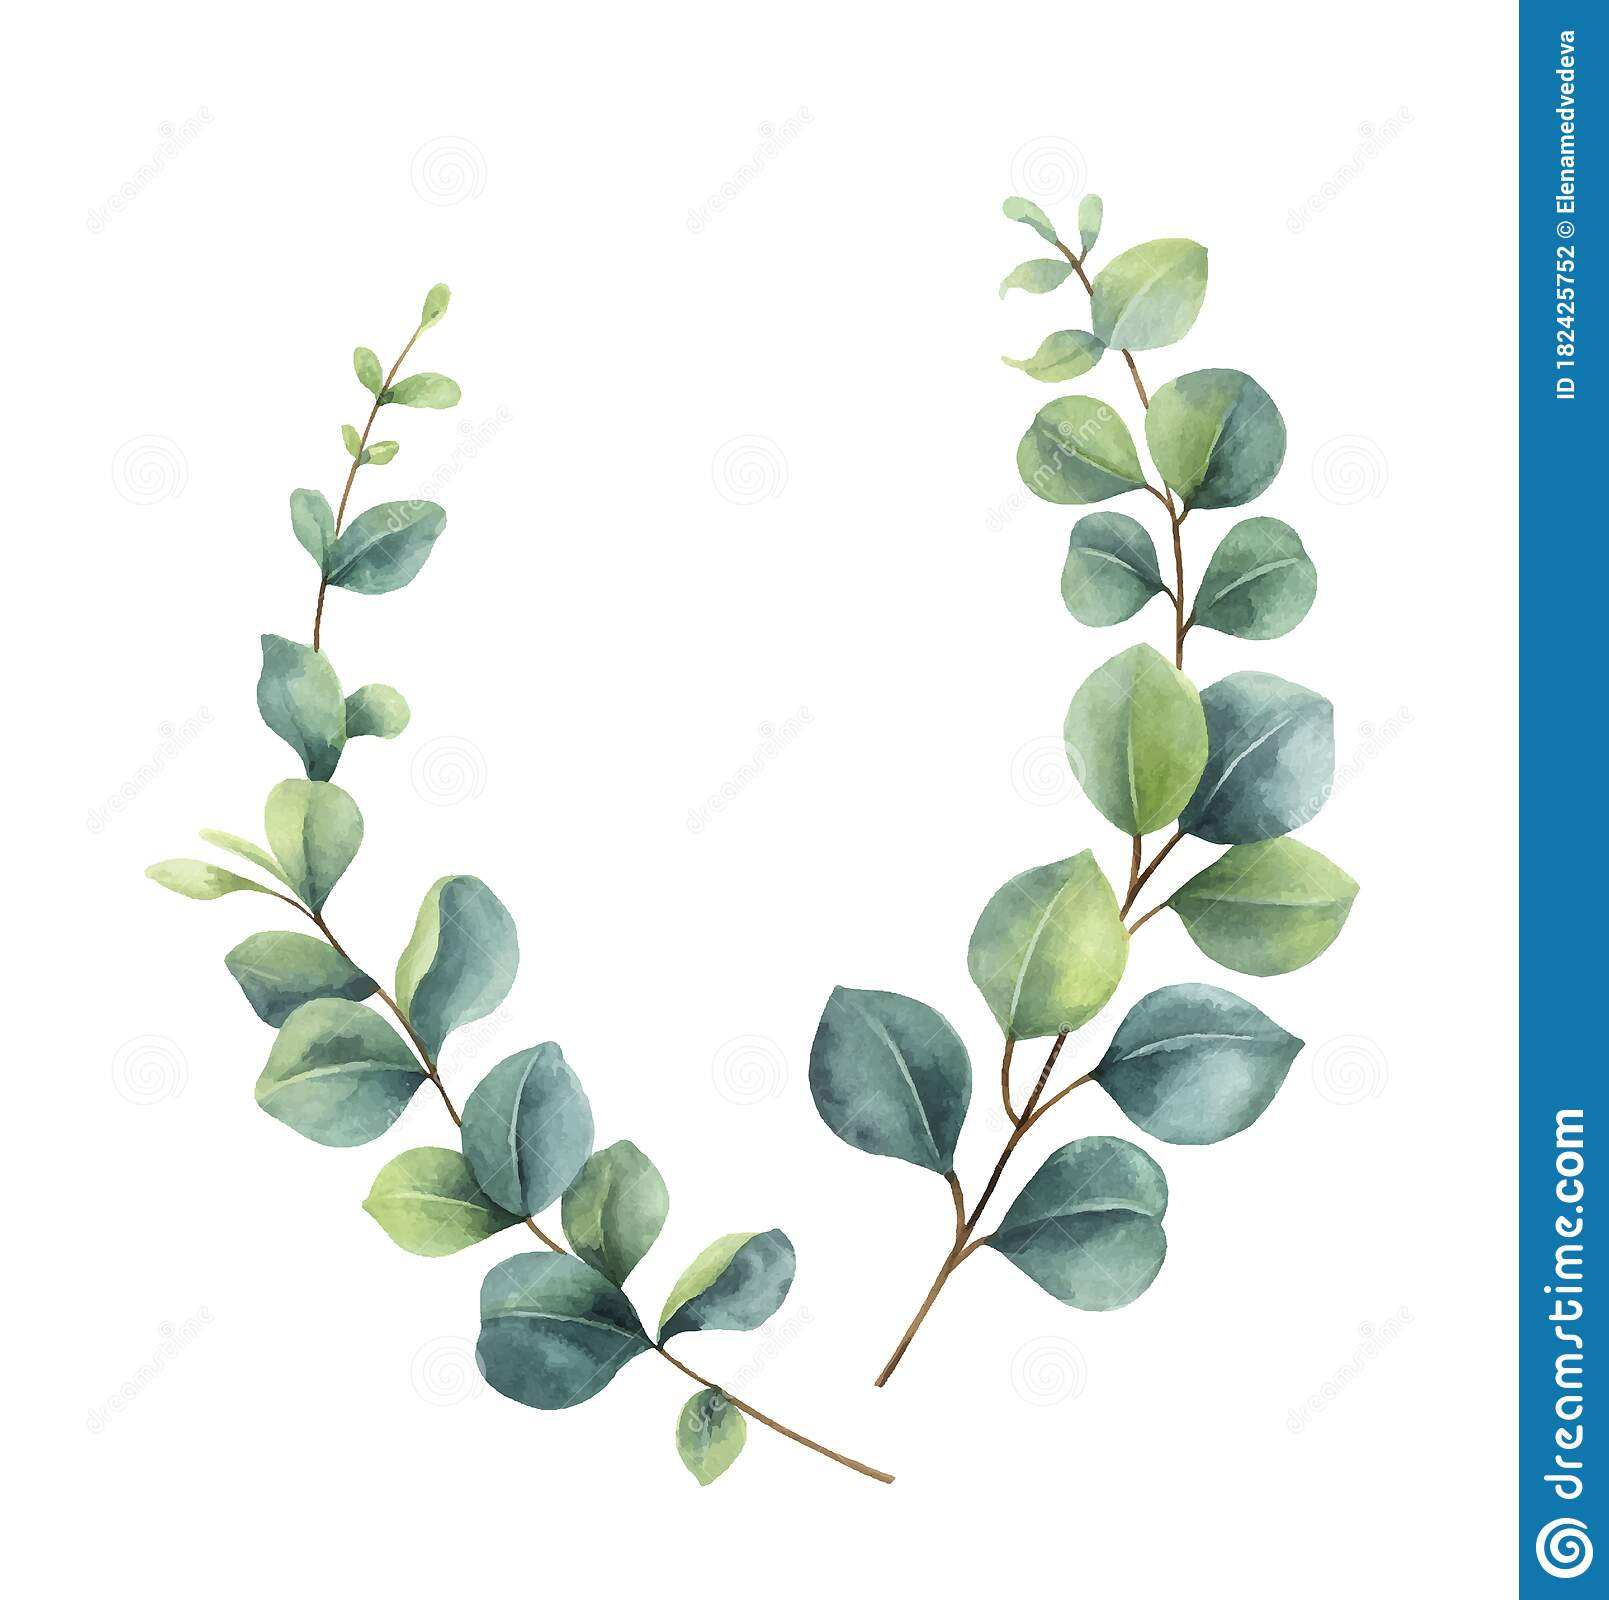 Watercolor Vector Wreath With Green Eucalyptus Leaves And Branches ...